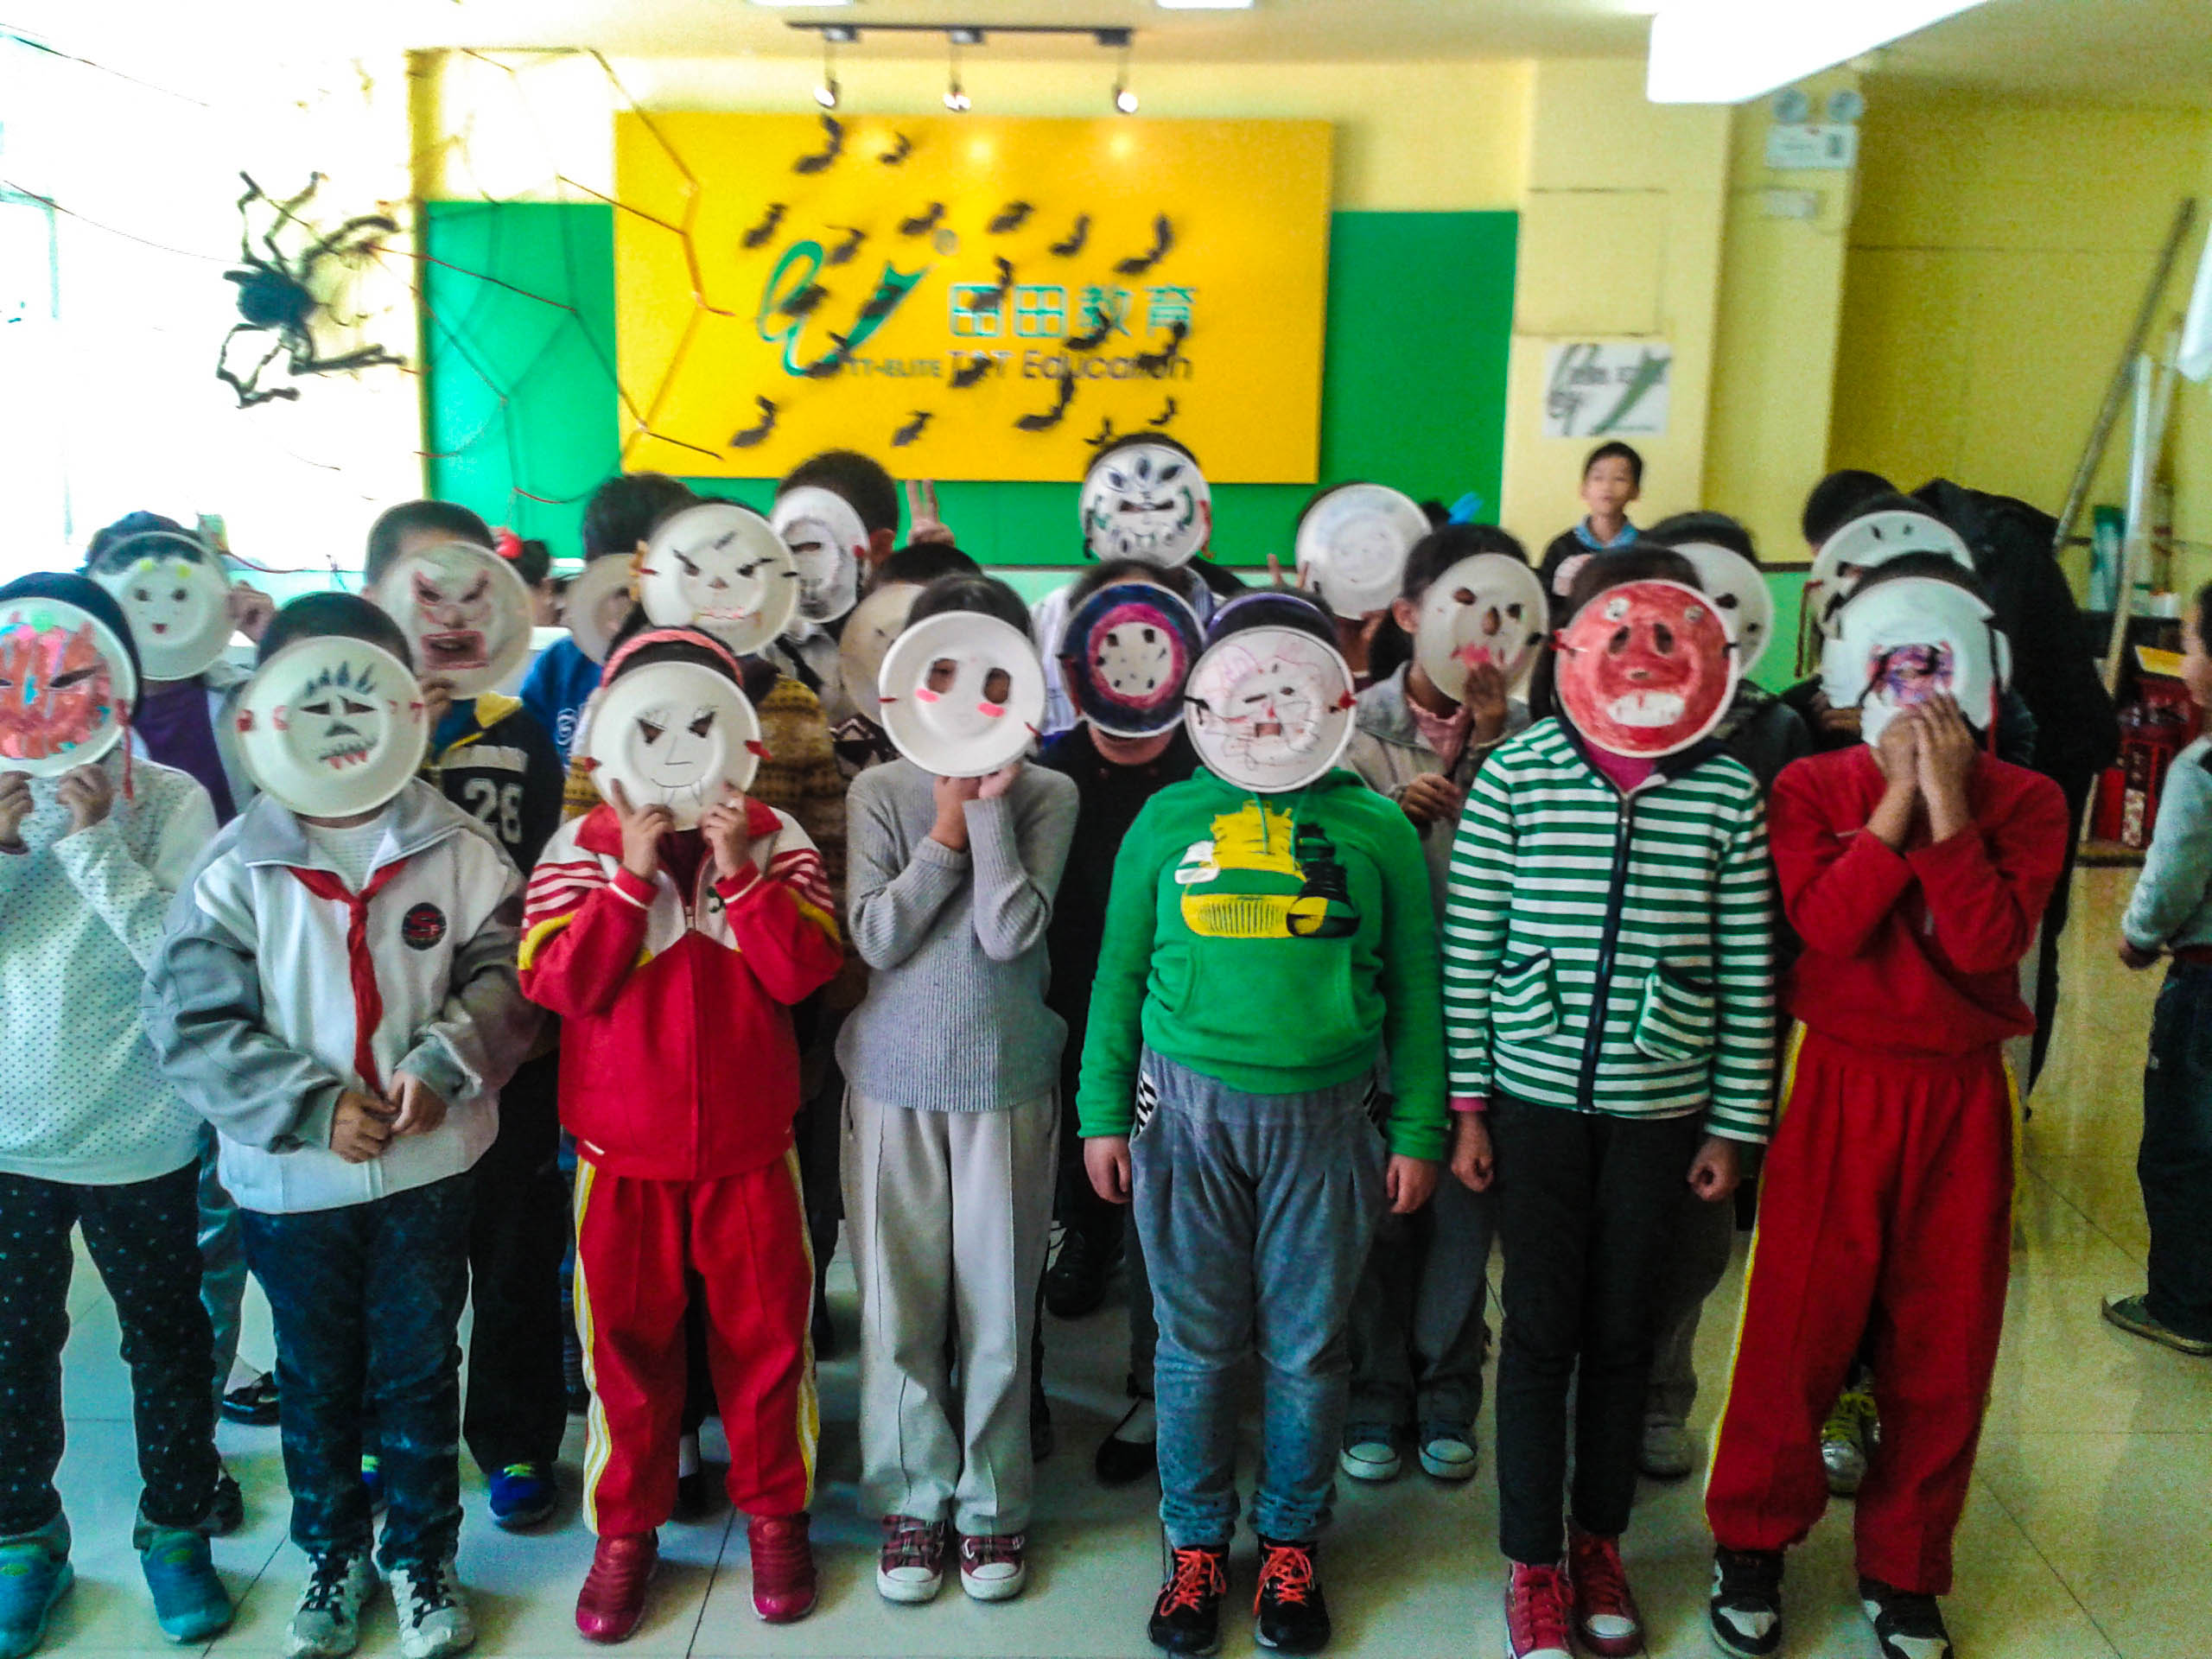 Chinese school children with masks